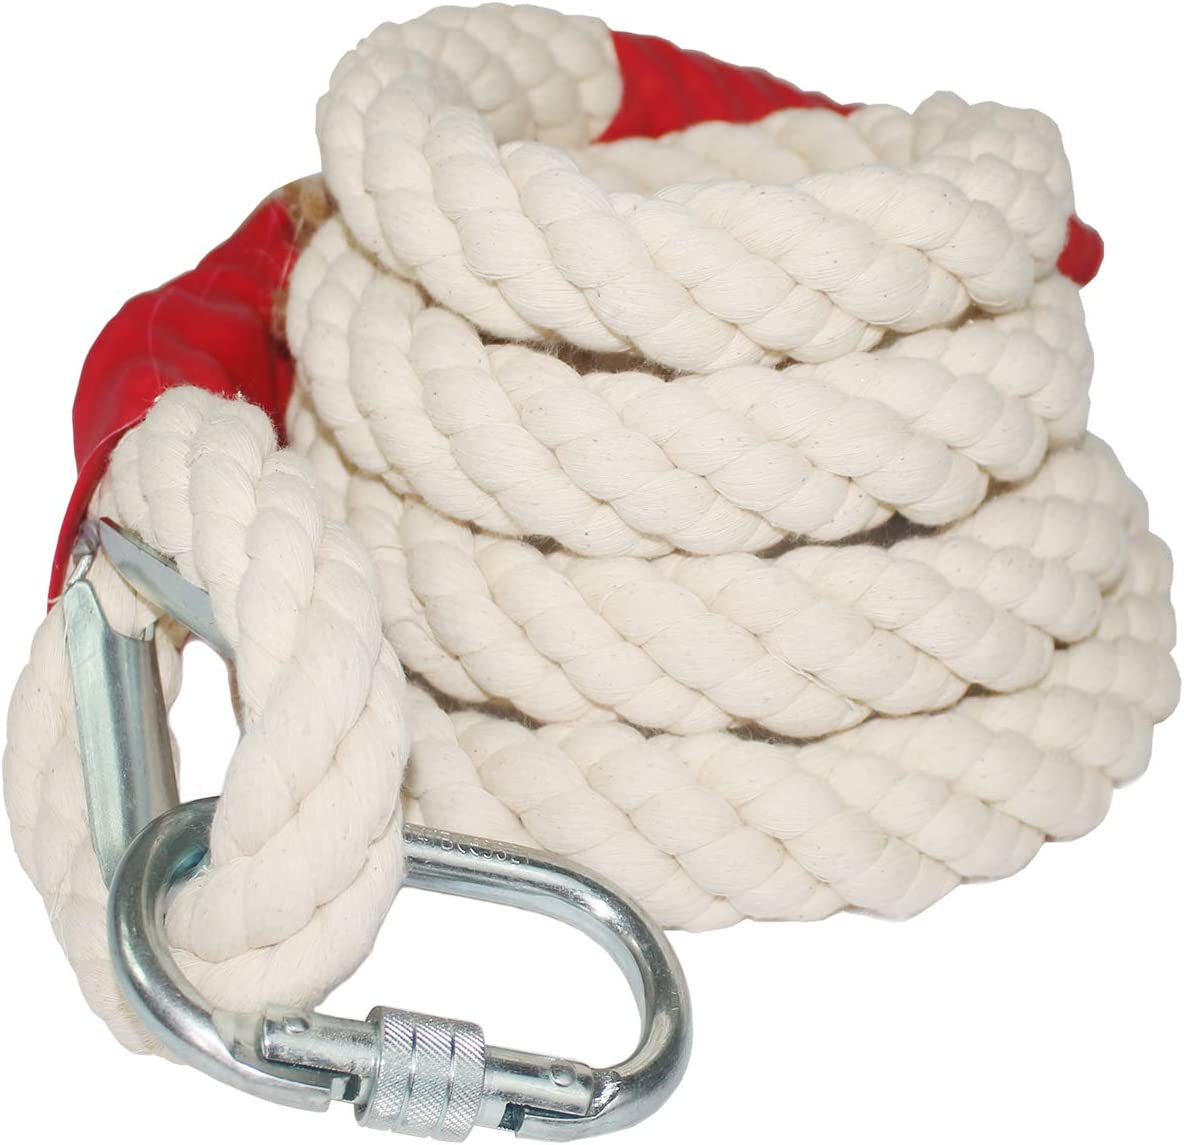 XMYANG Gym Climbing Rope Heavy Duty Workout Rope for Home Kids Tree Climbing Rope Exercise Training Rope